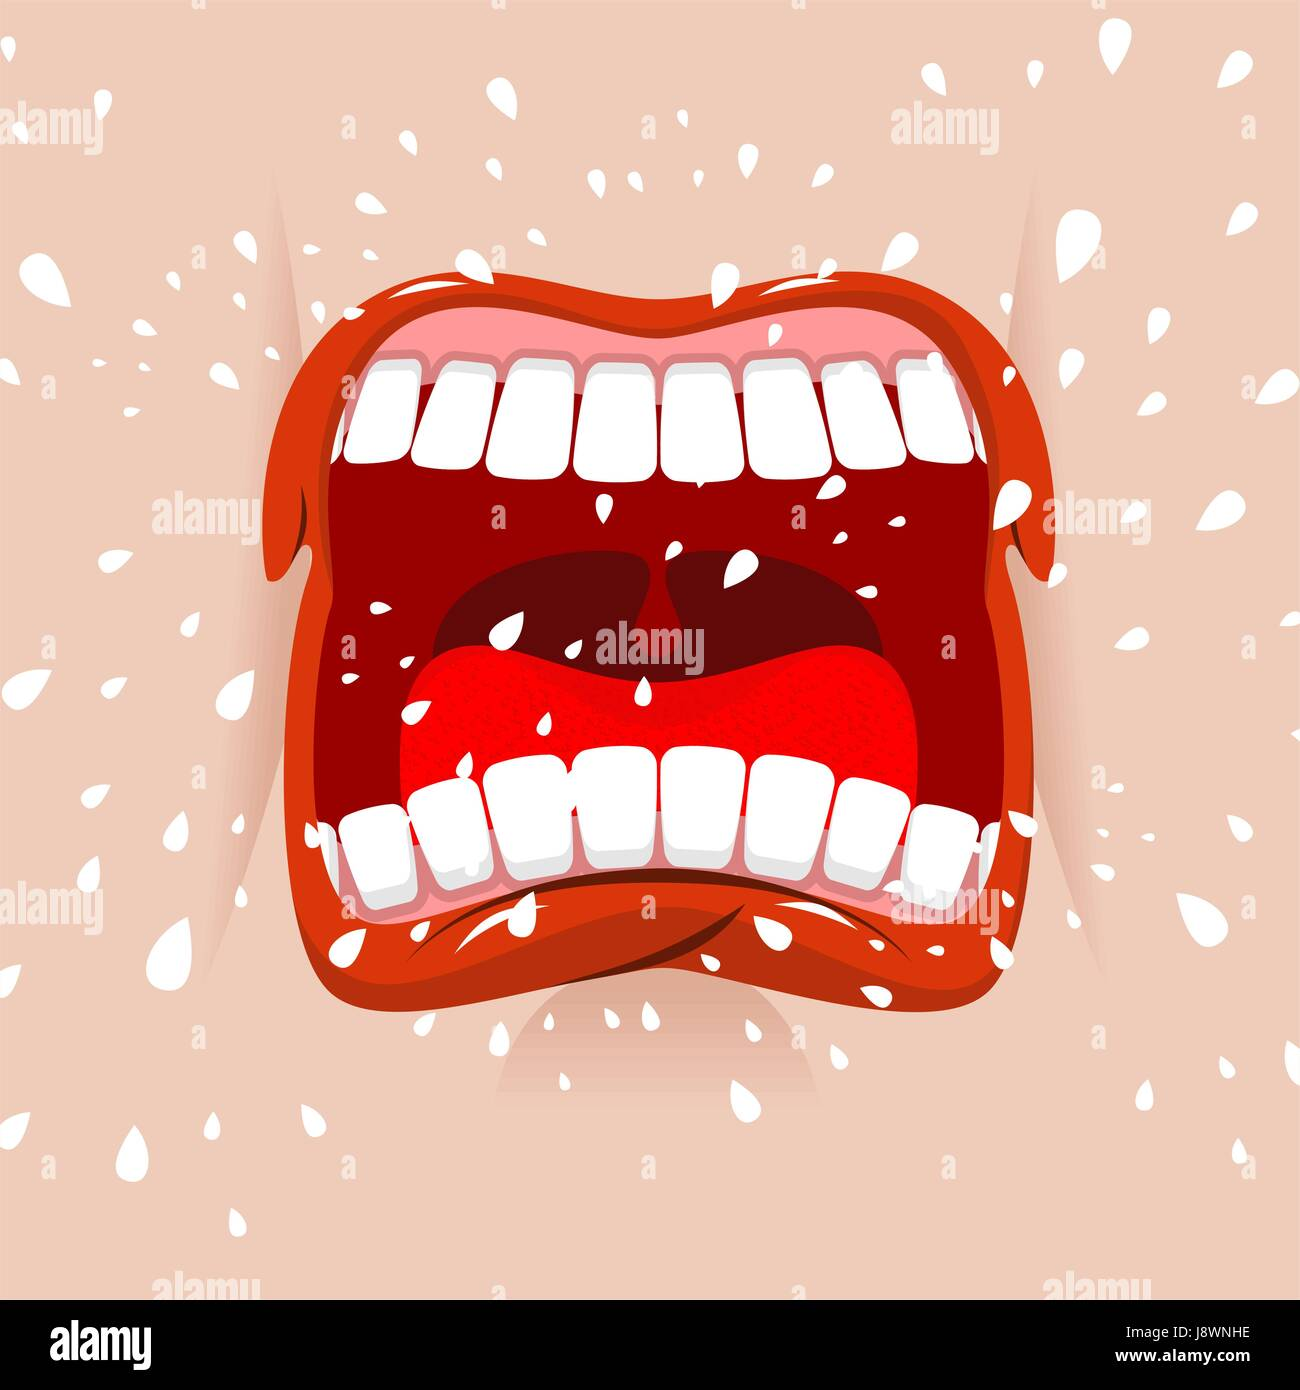 Shout aggressive face. Man Yells. Violent emotion. Open your mouth and tongue. Flying saliva. Shout. Shrill scream. - Stock Vector